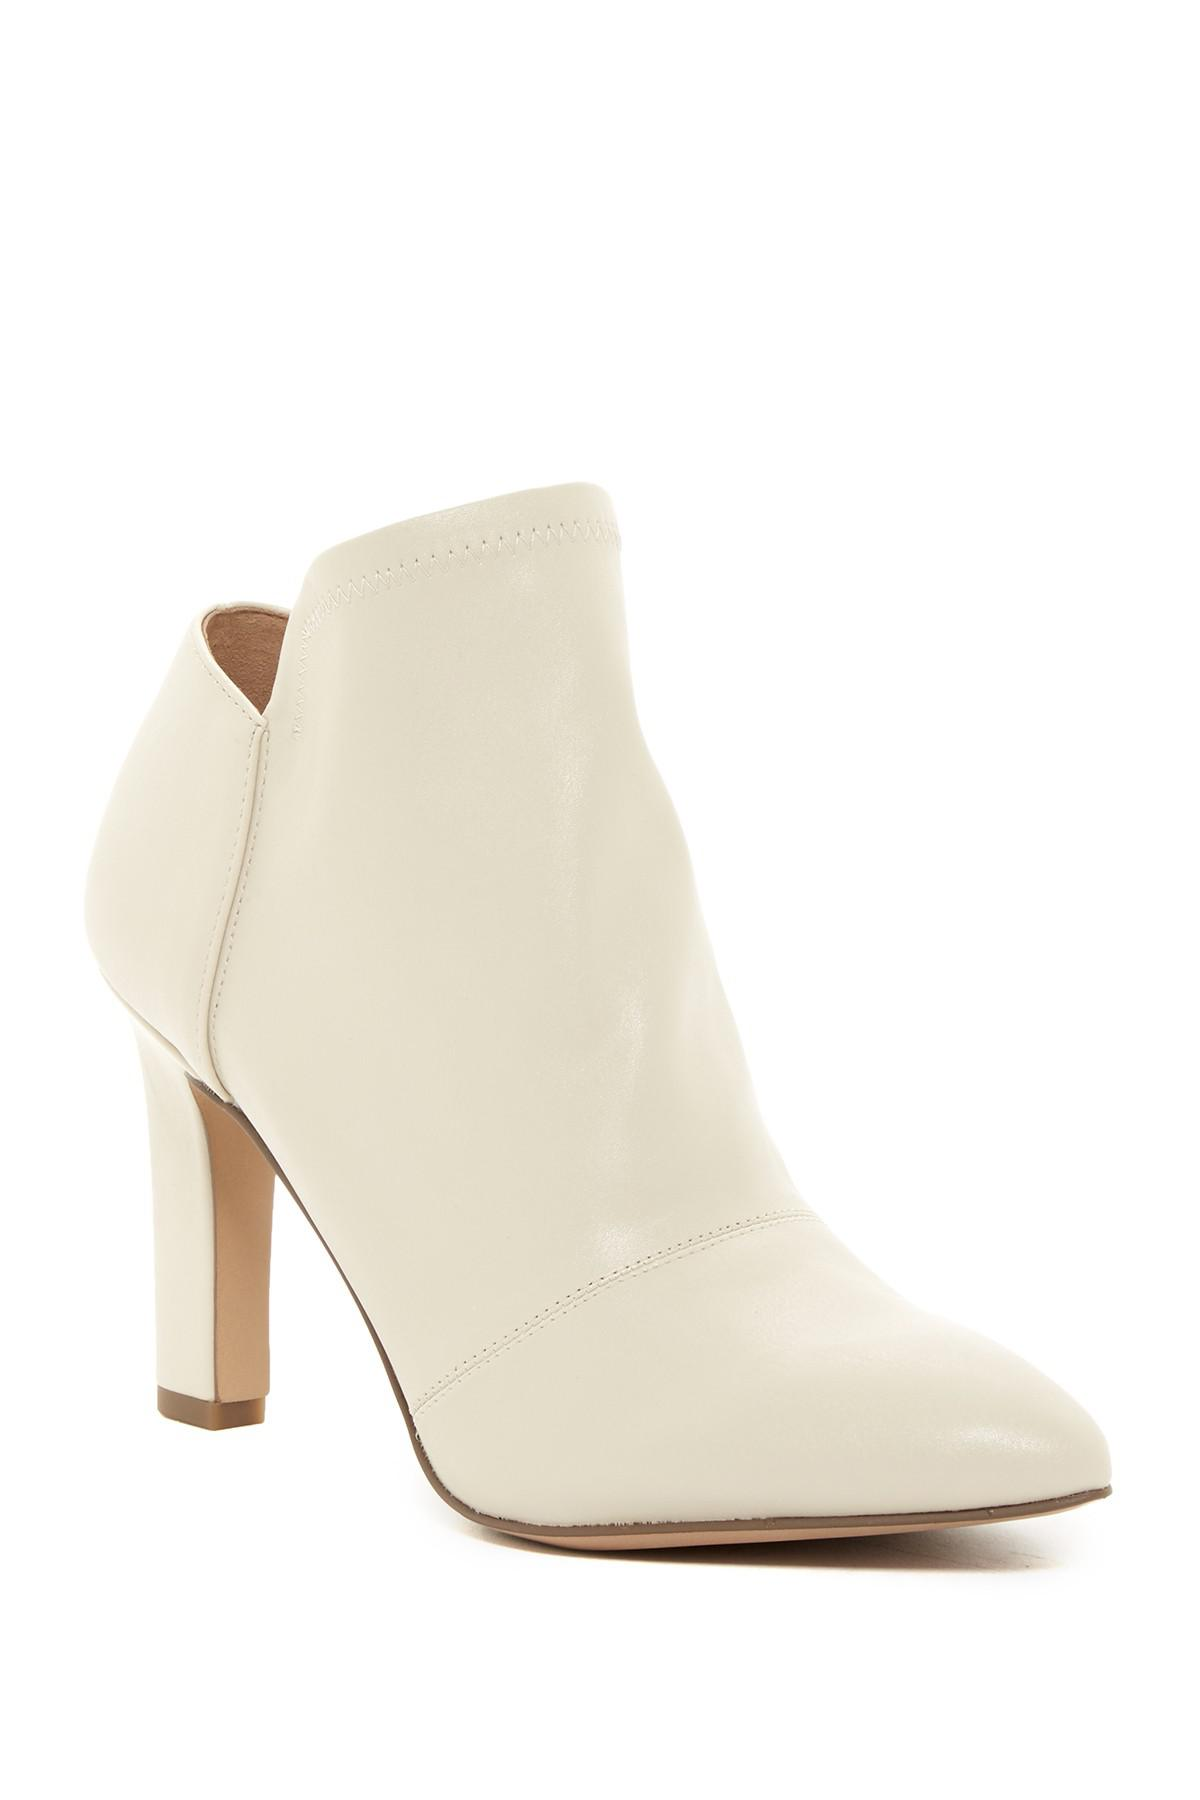 a960818b5 Franco Sarto Kairi Asymmetrical Shaft Bootie in White - Lyst